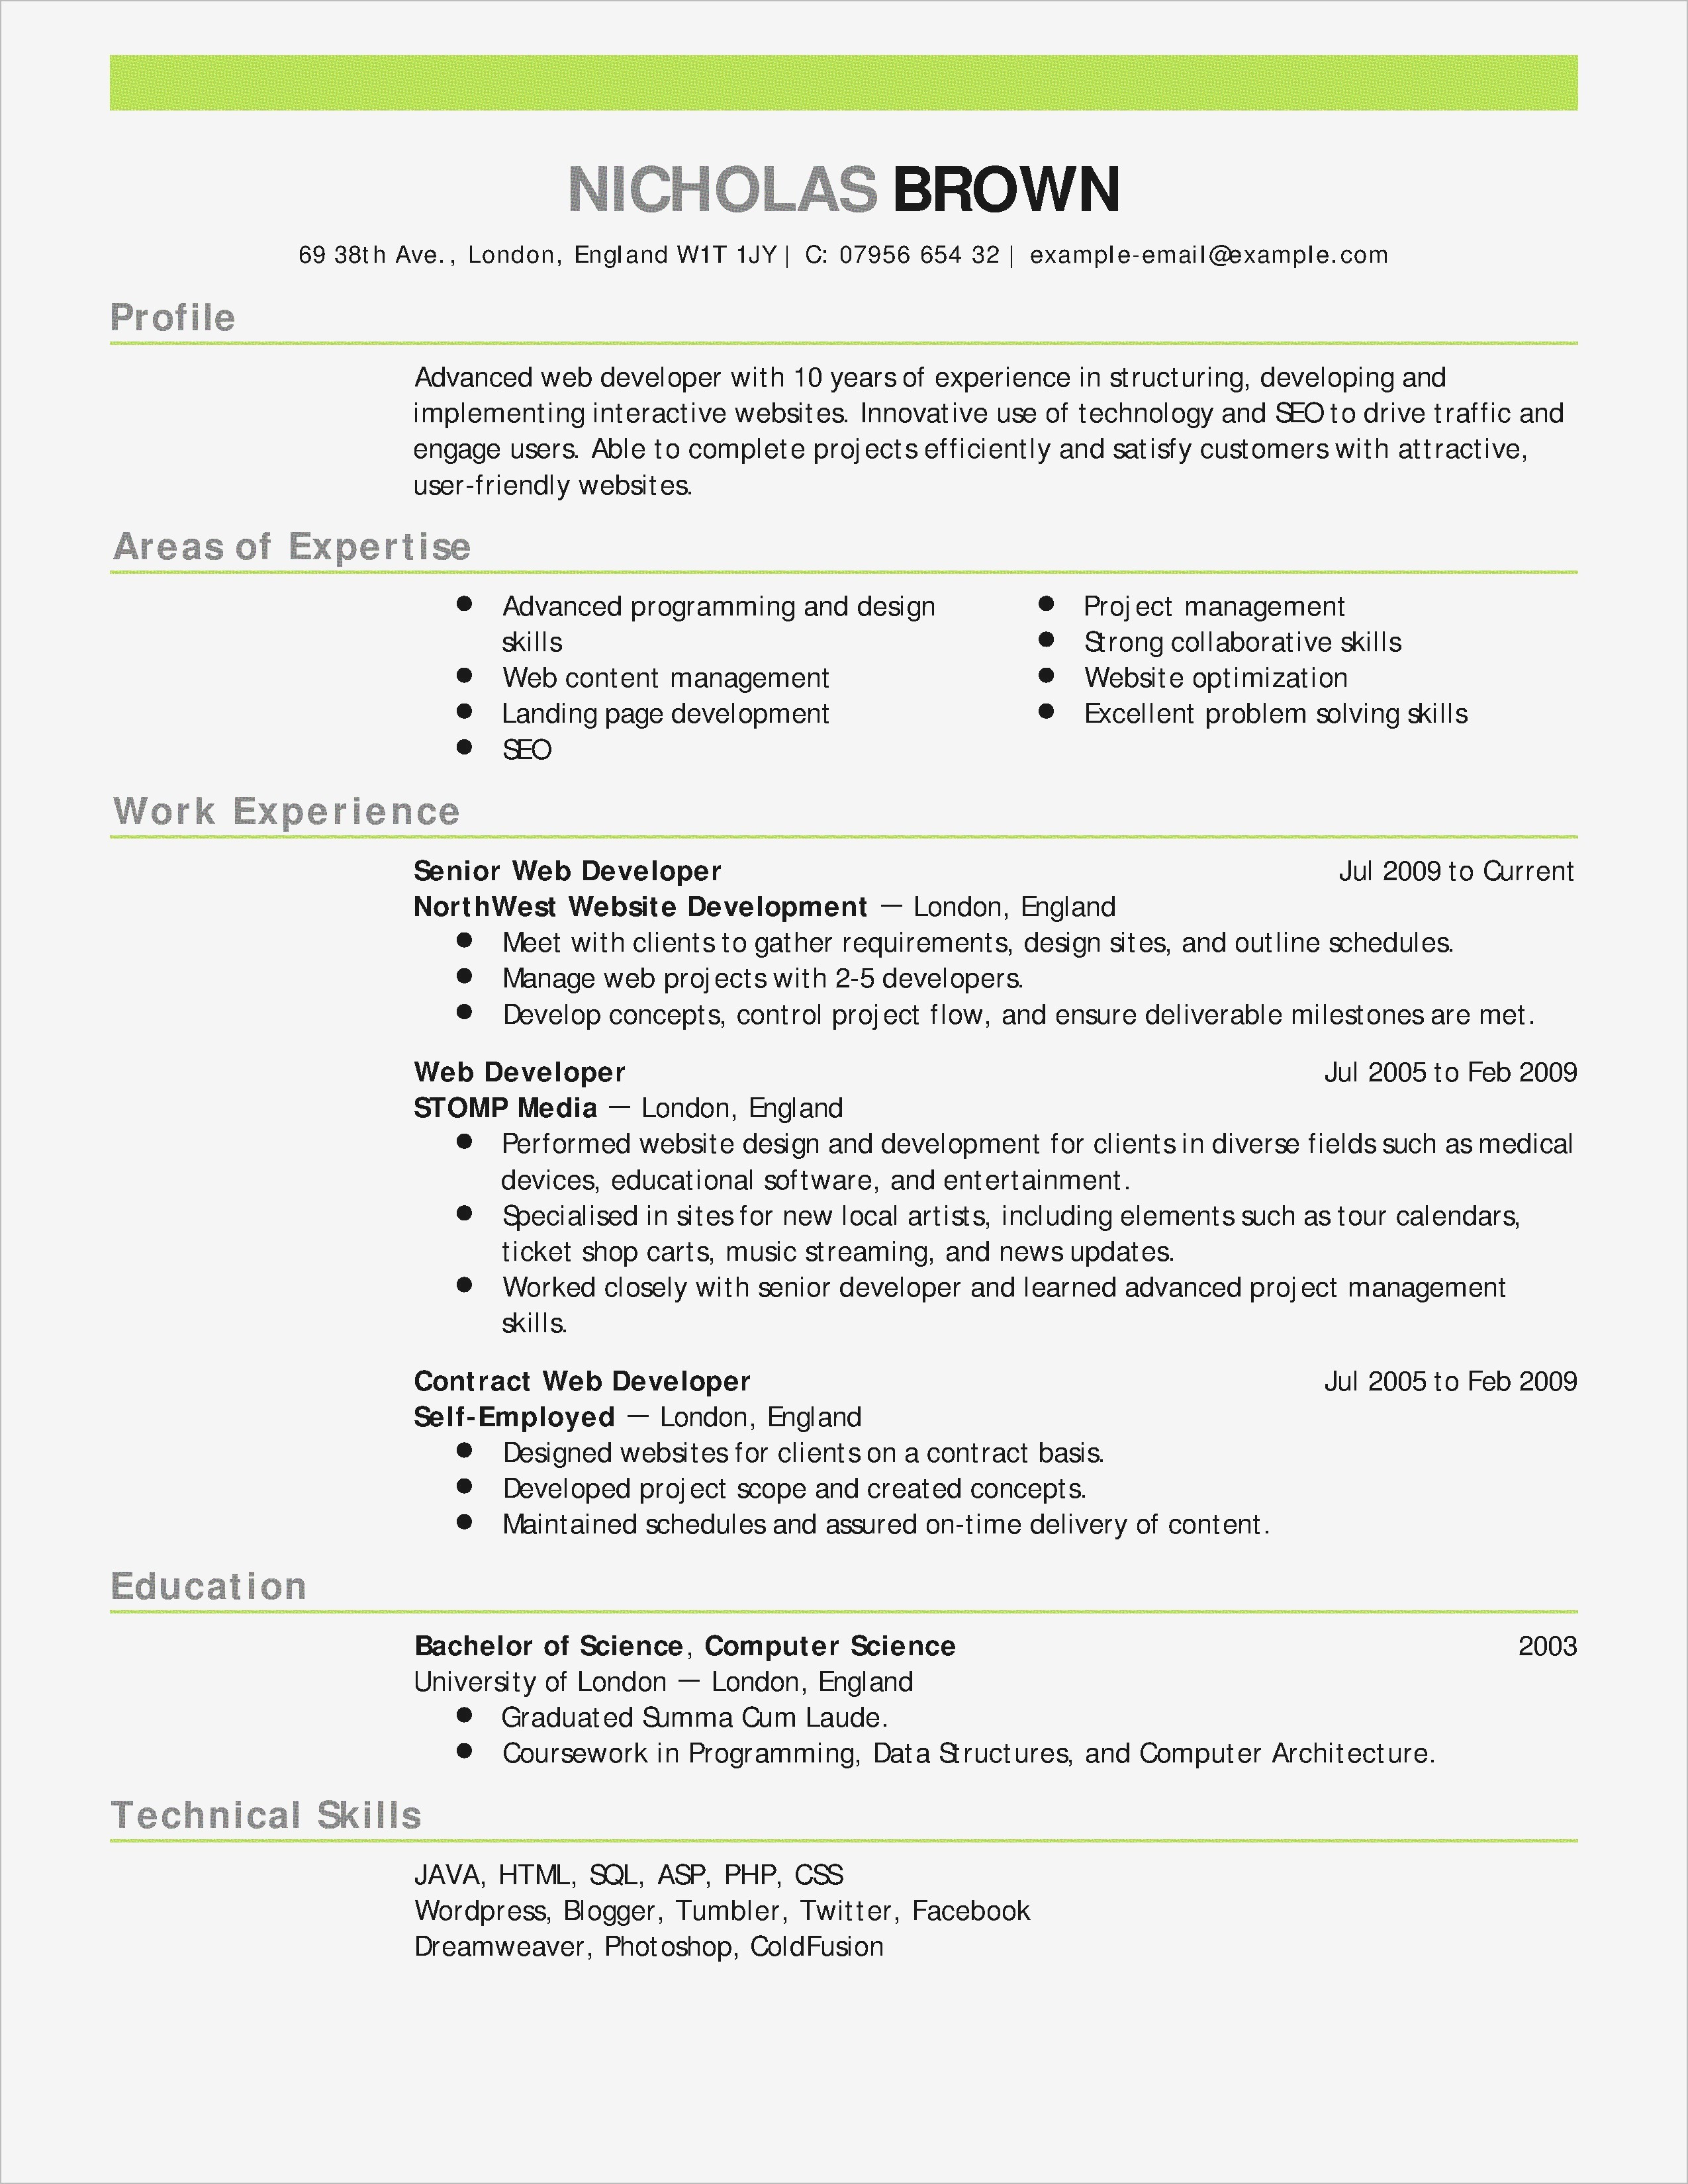 Resume References Template - Professional Reference List Template – Resumes for Teens Templates